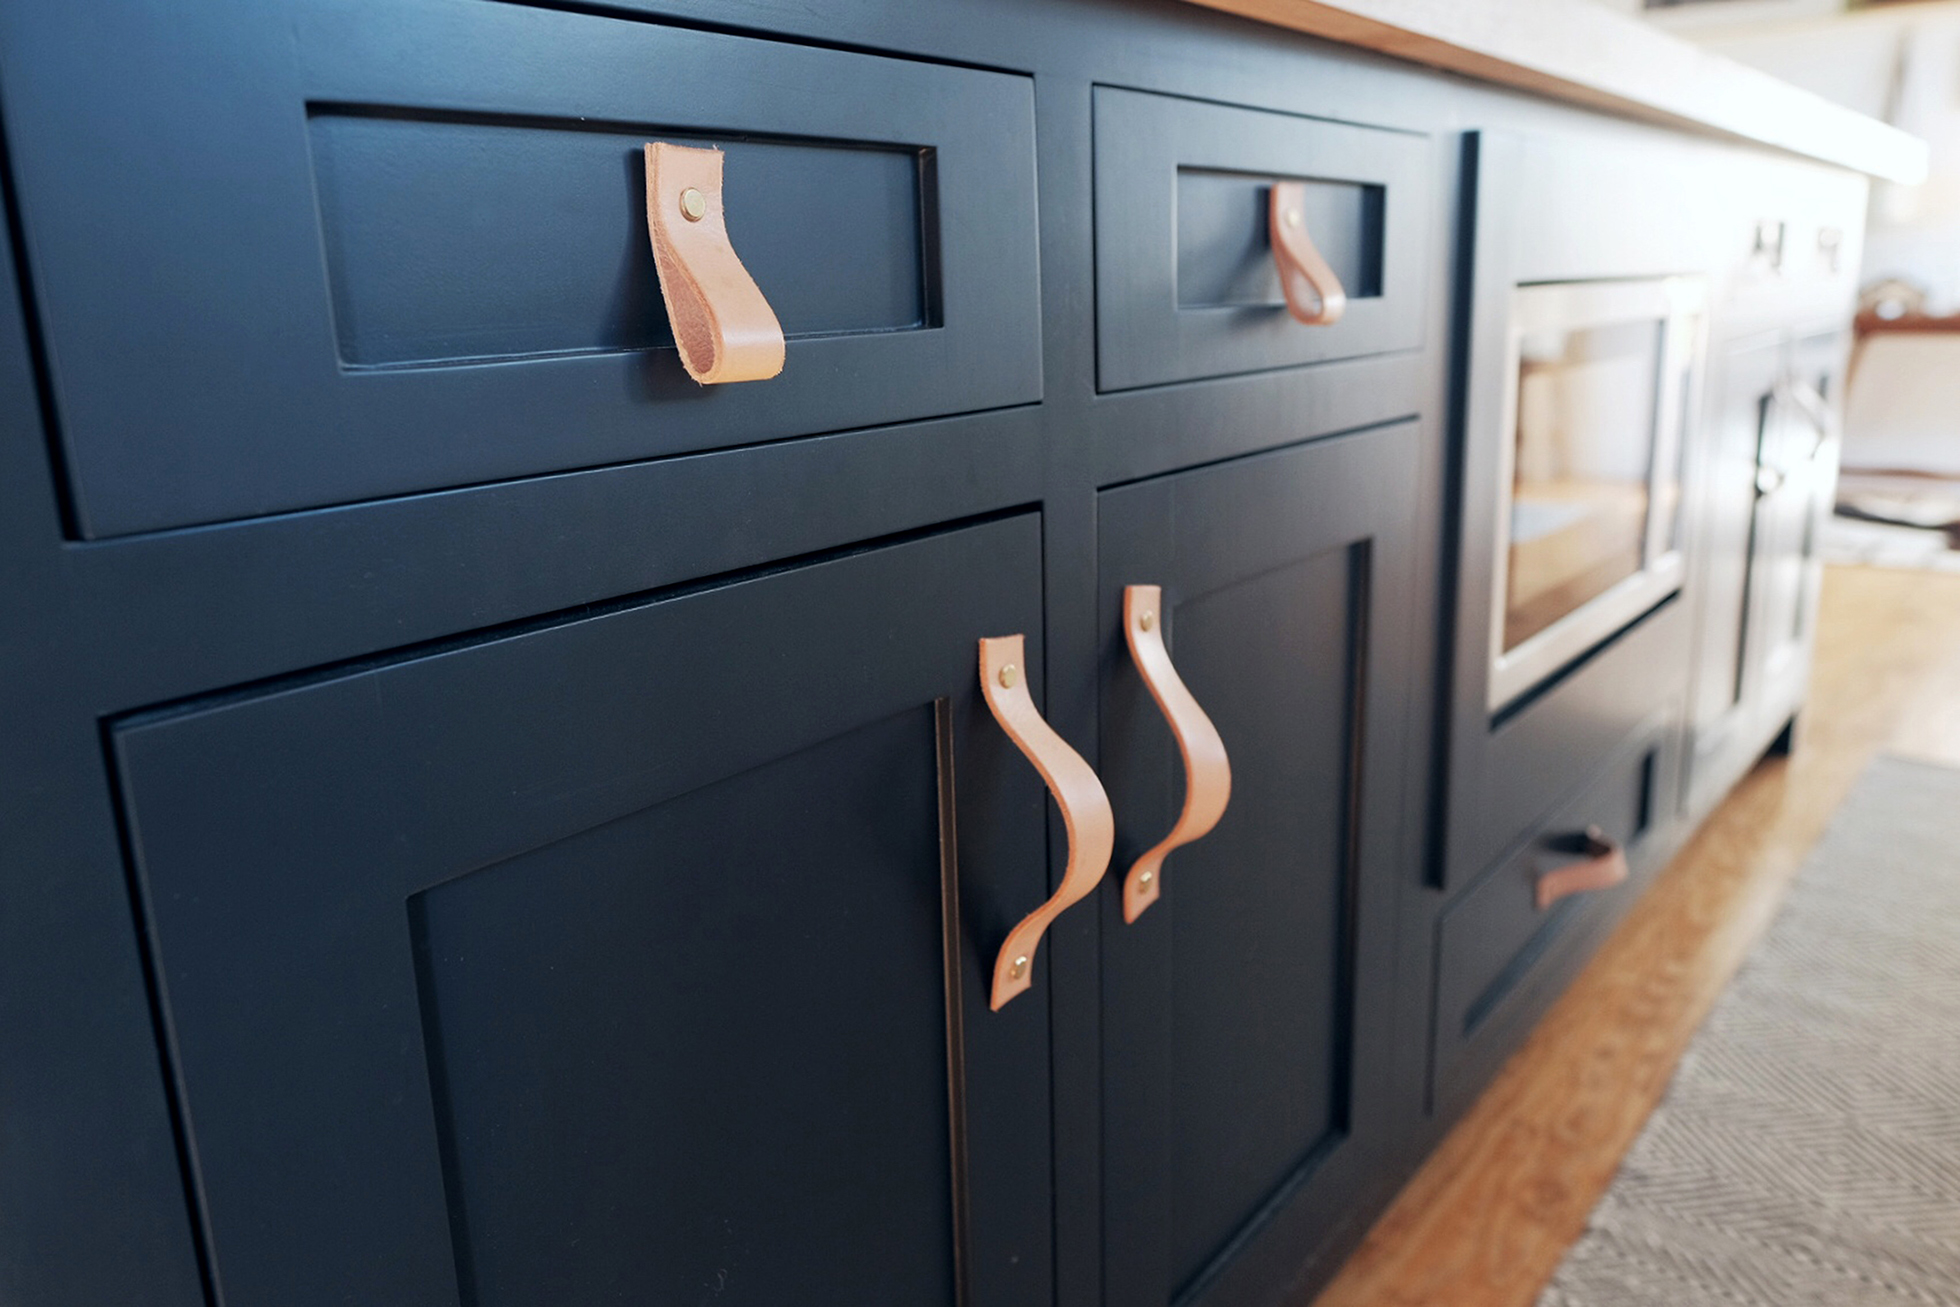 Navy blue cabinets with light brown leather drawer pulls